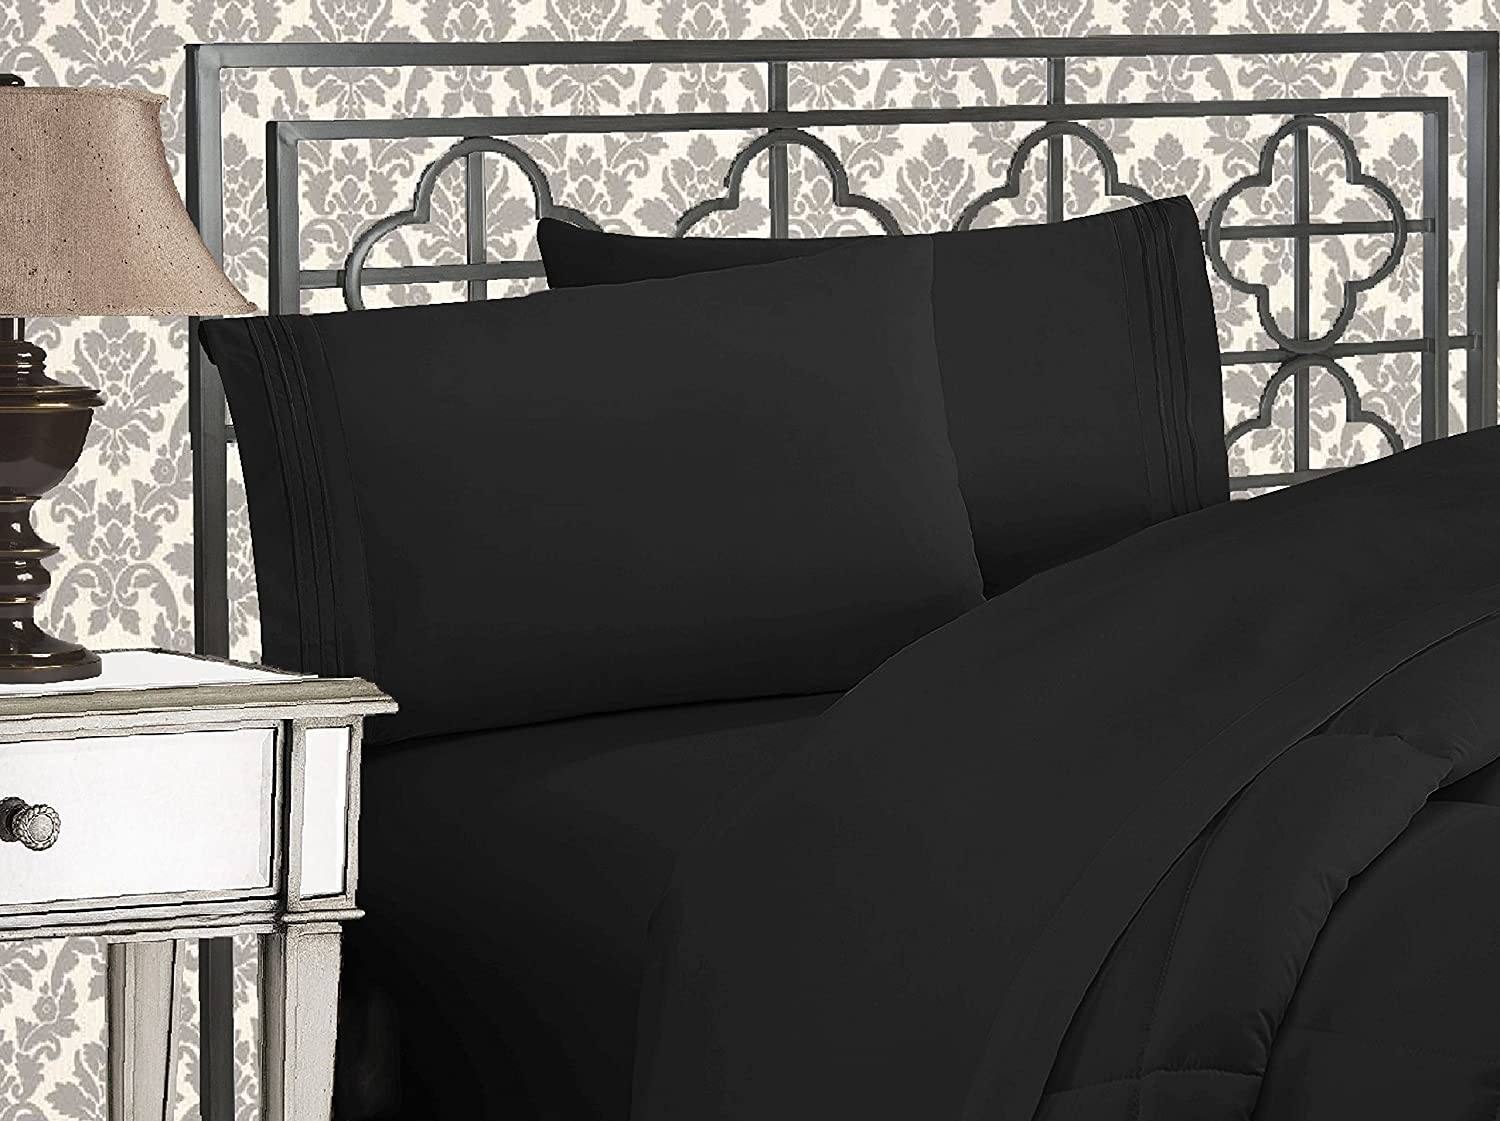 Elegant Comfort Luxurious 1500 Thread Count Egyptian Quality Three Line Embroidered Softest Premium Hotel Quality 4-Piece Black Bed Sheet Set